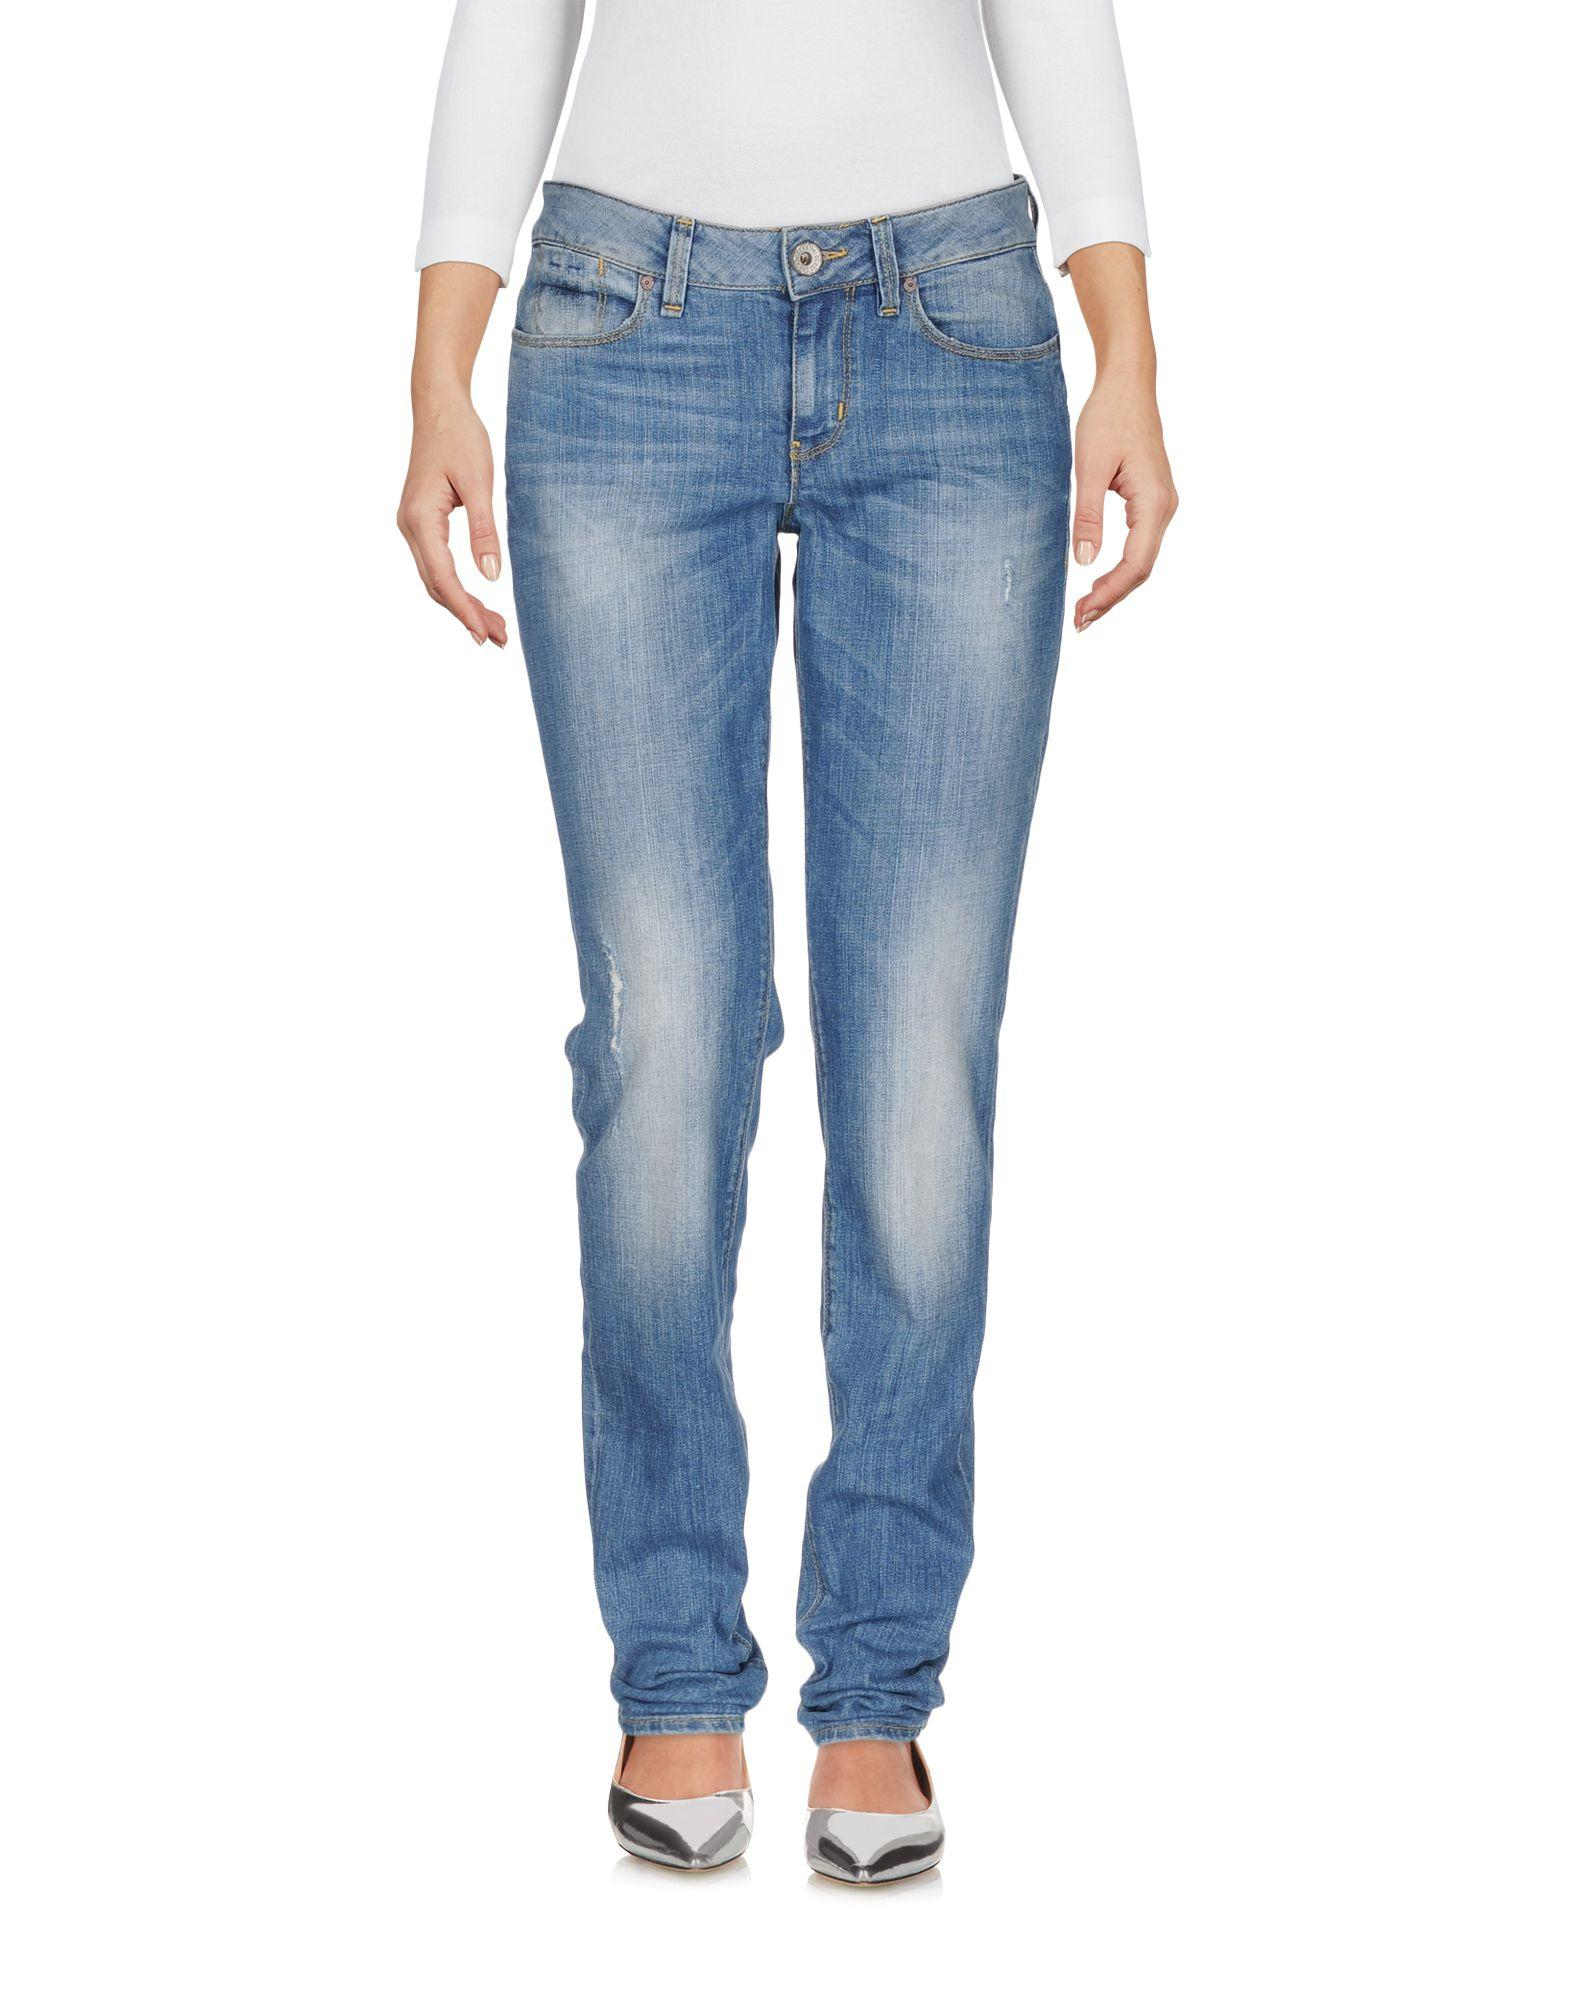 Guess Jeans In Blue